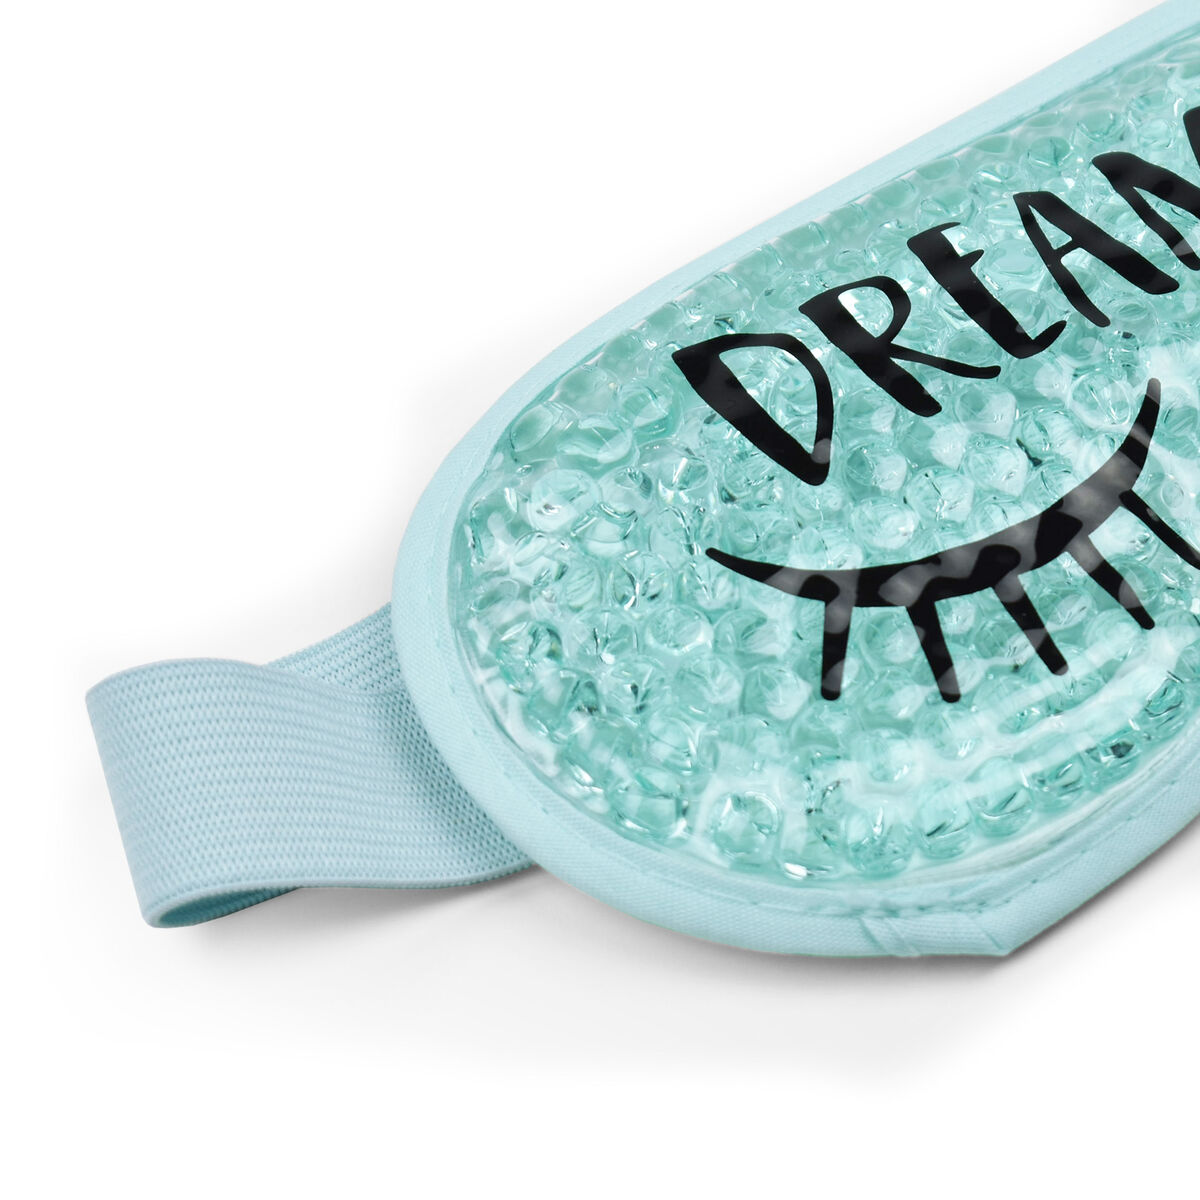 CHILL OUT - GEL EYE MASK - DREAM BIG, , zoom